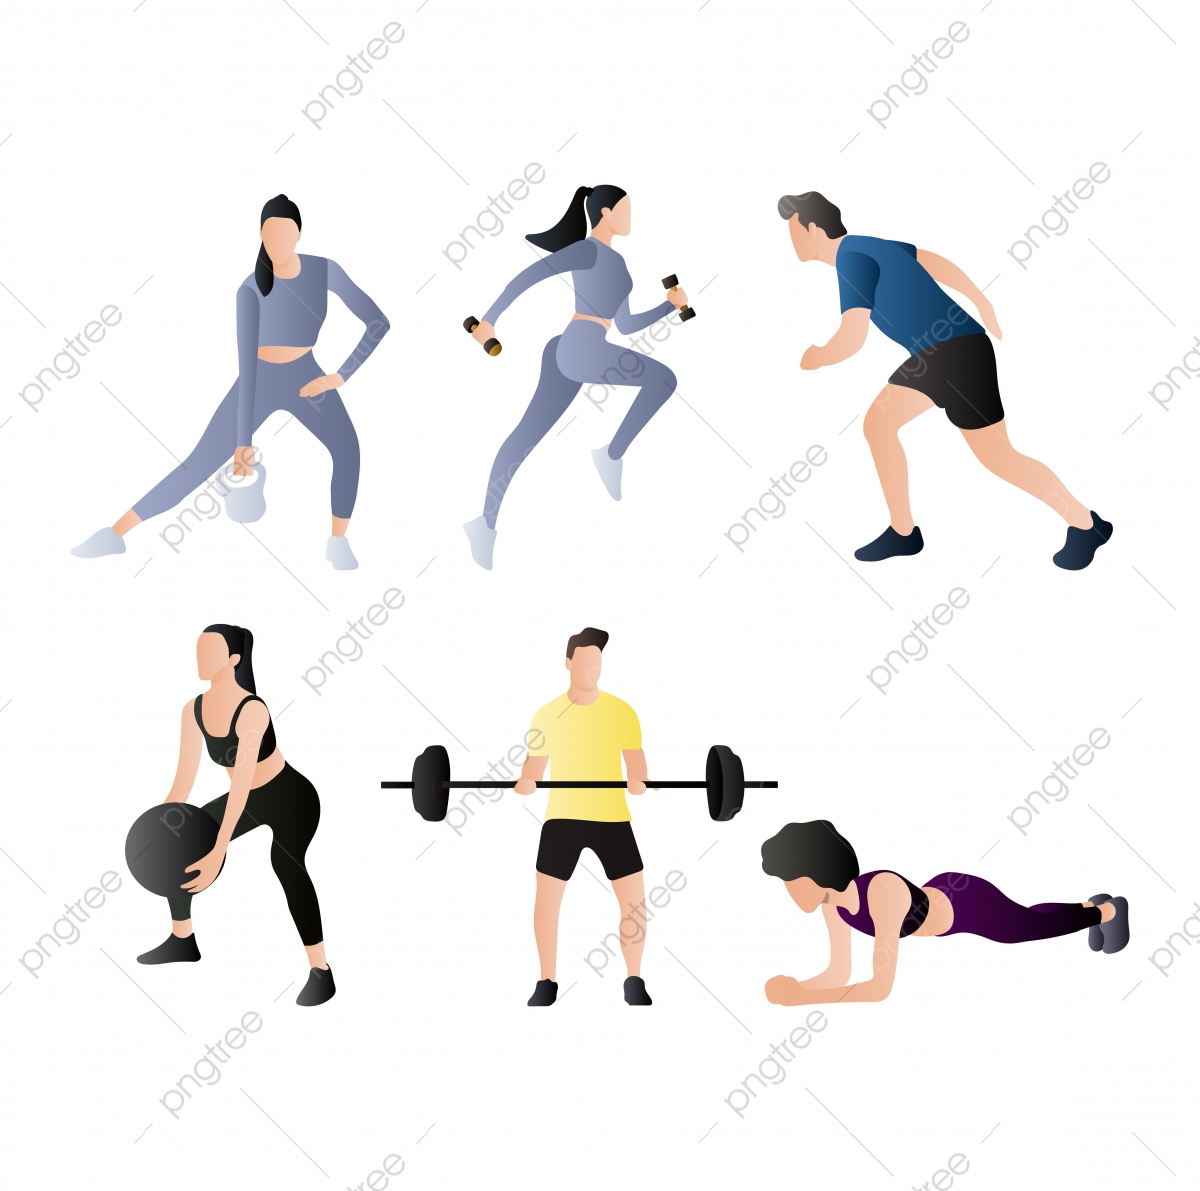 Exercise Png Vector Psd And Clipart With Transparent Background For Free Download Pngtree